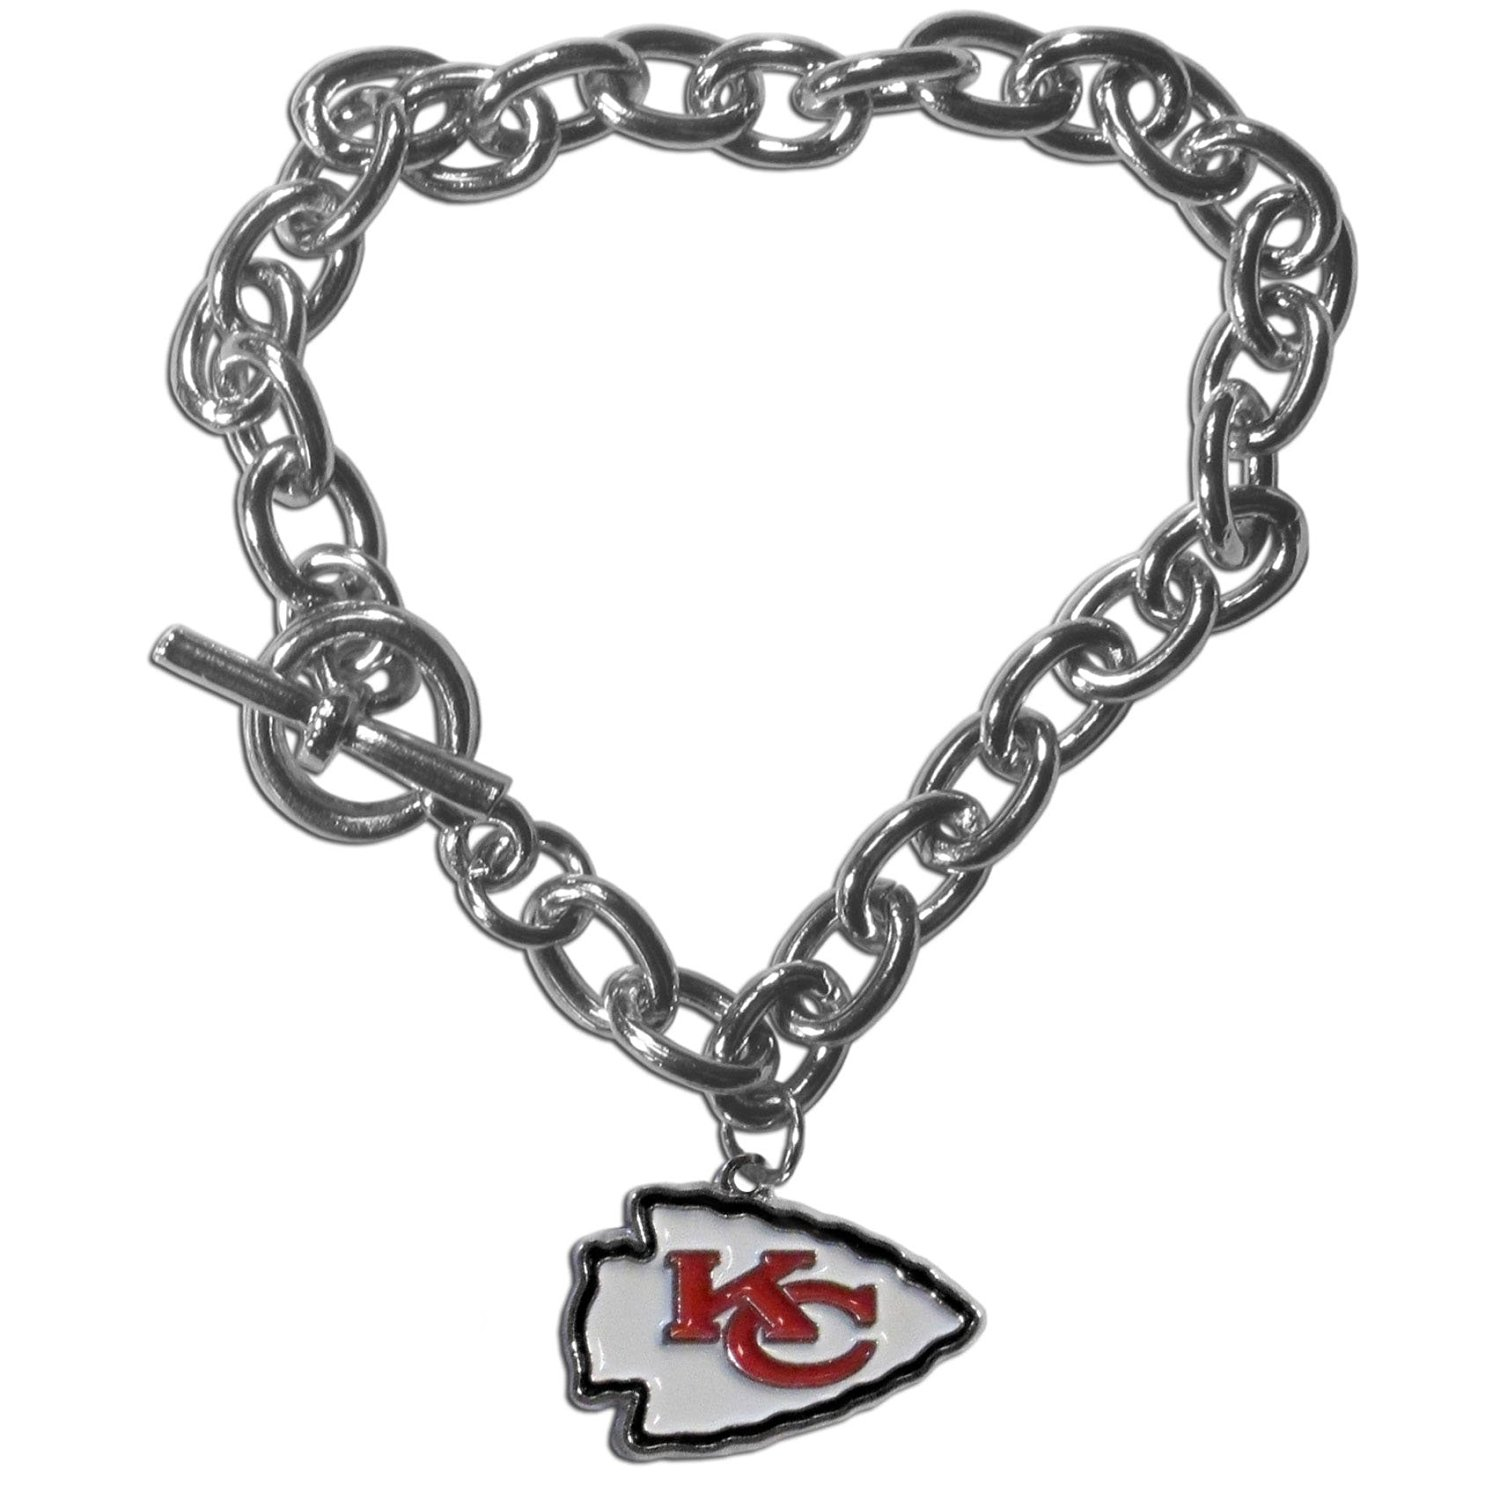 Kansas City Chiefs Charm Chain Bracelet